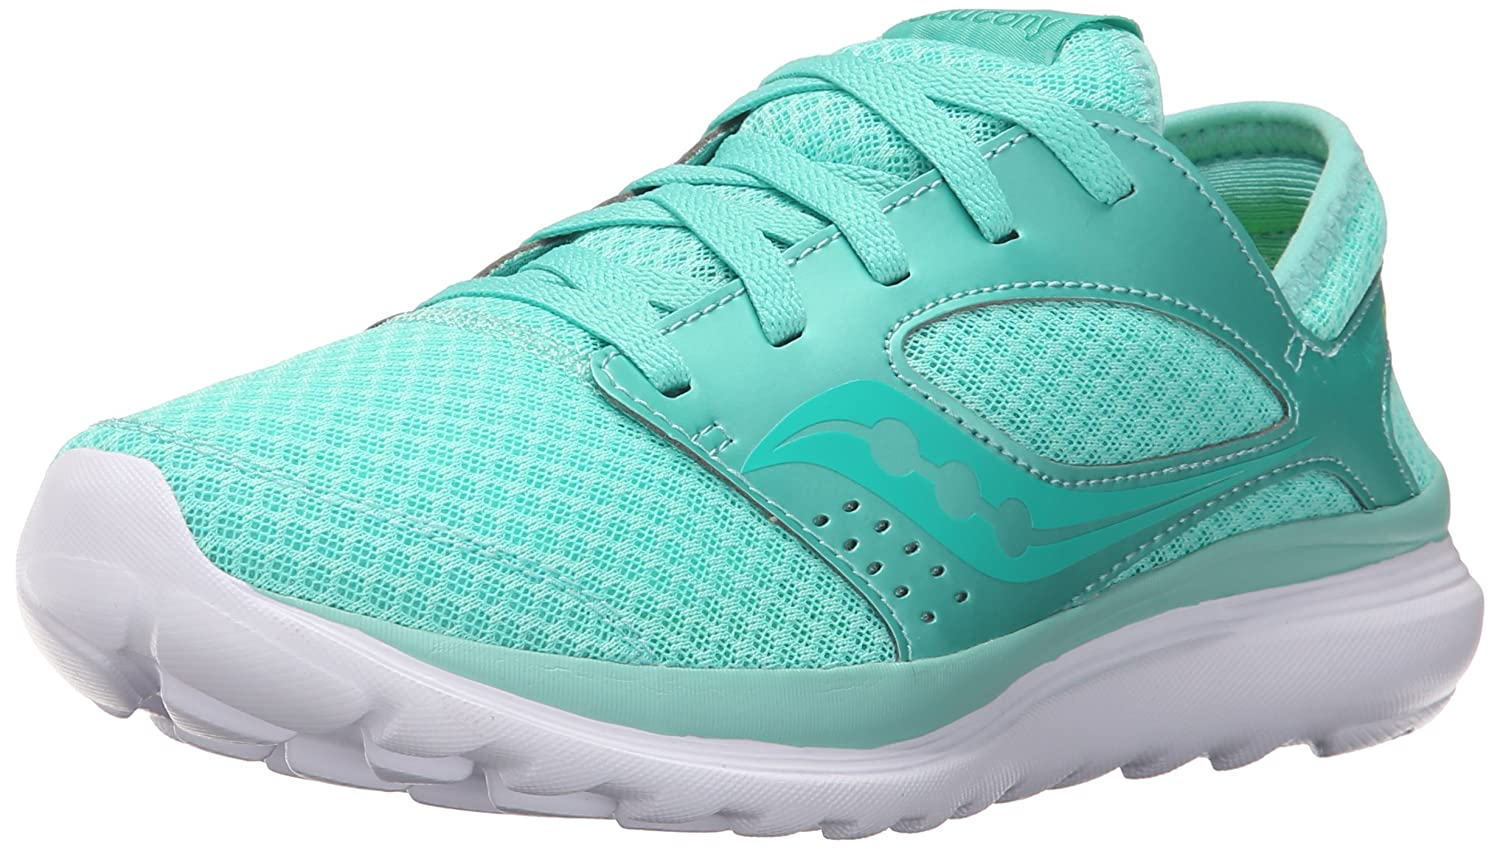 Saucony Women's Kineta Relay Running Shoe B018FC55HW 7 B(M) US|Mint/Tea